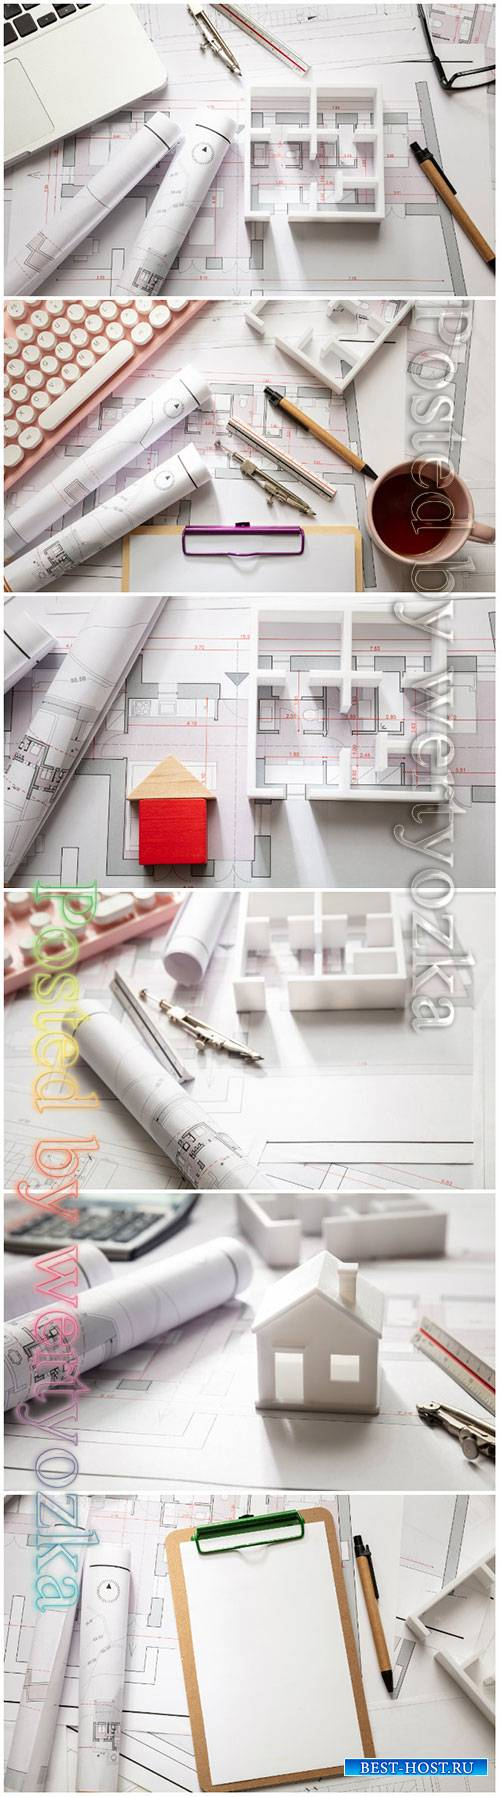 Construction concept beautiful stock photo